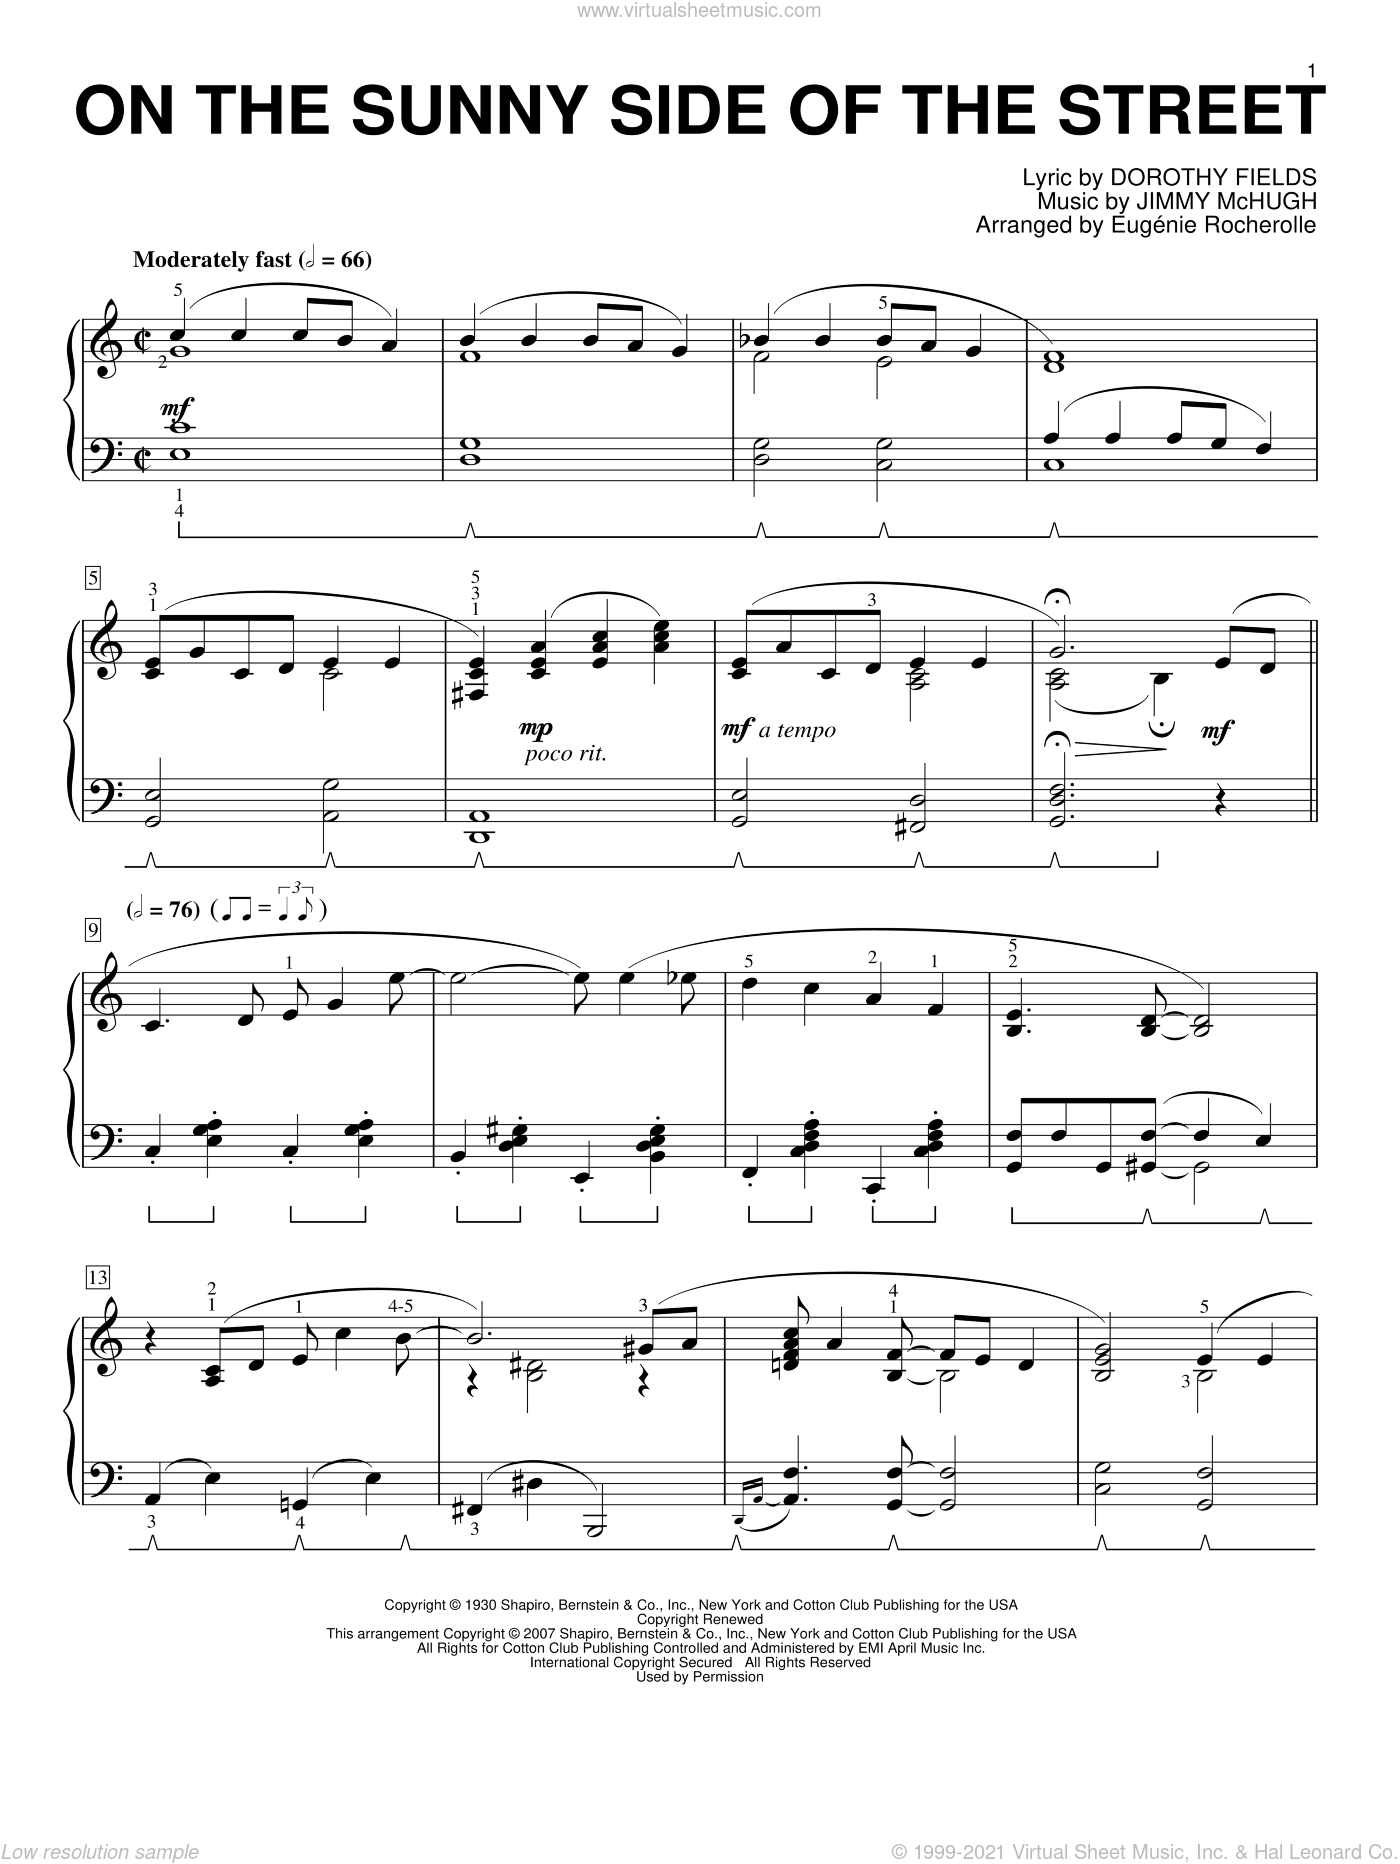 On The Sunny Side Of The Street sheet music for piano solo by Dorothy Fields, Eugenie Rocherolle and Jimmy McHugh, intermediate skill level